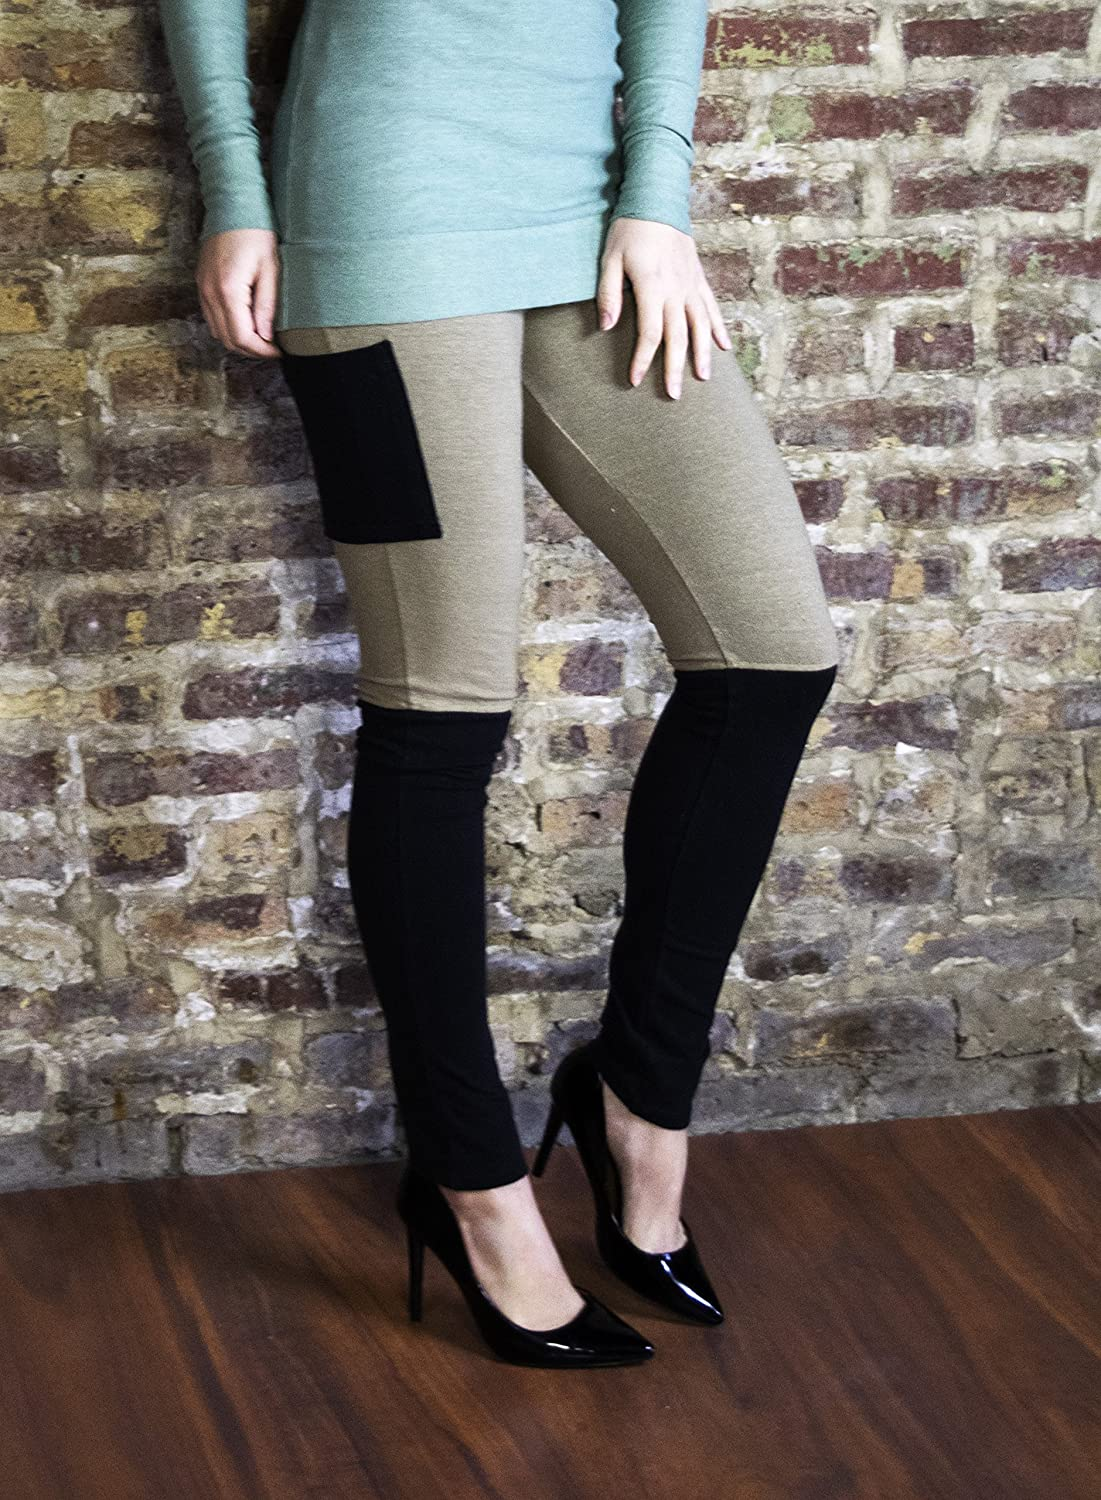 508d6d414652e Amazon.com: Leggings - Two-tone with Pocket - Hemp & Organic Cotton Stretch  Jersey: Handmade